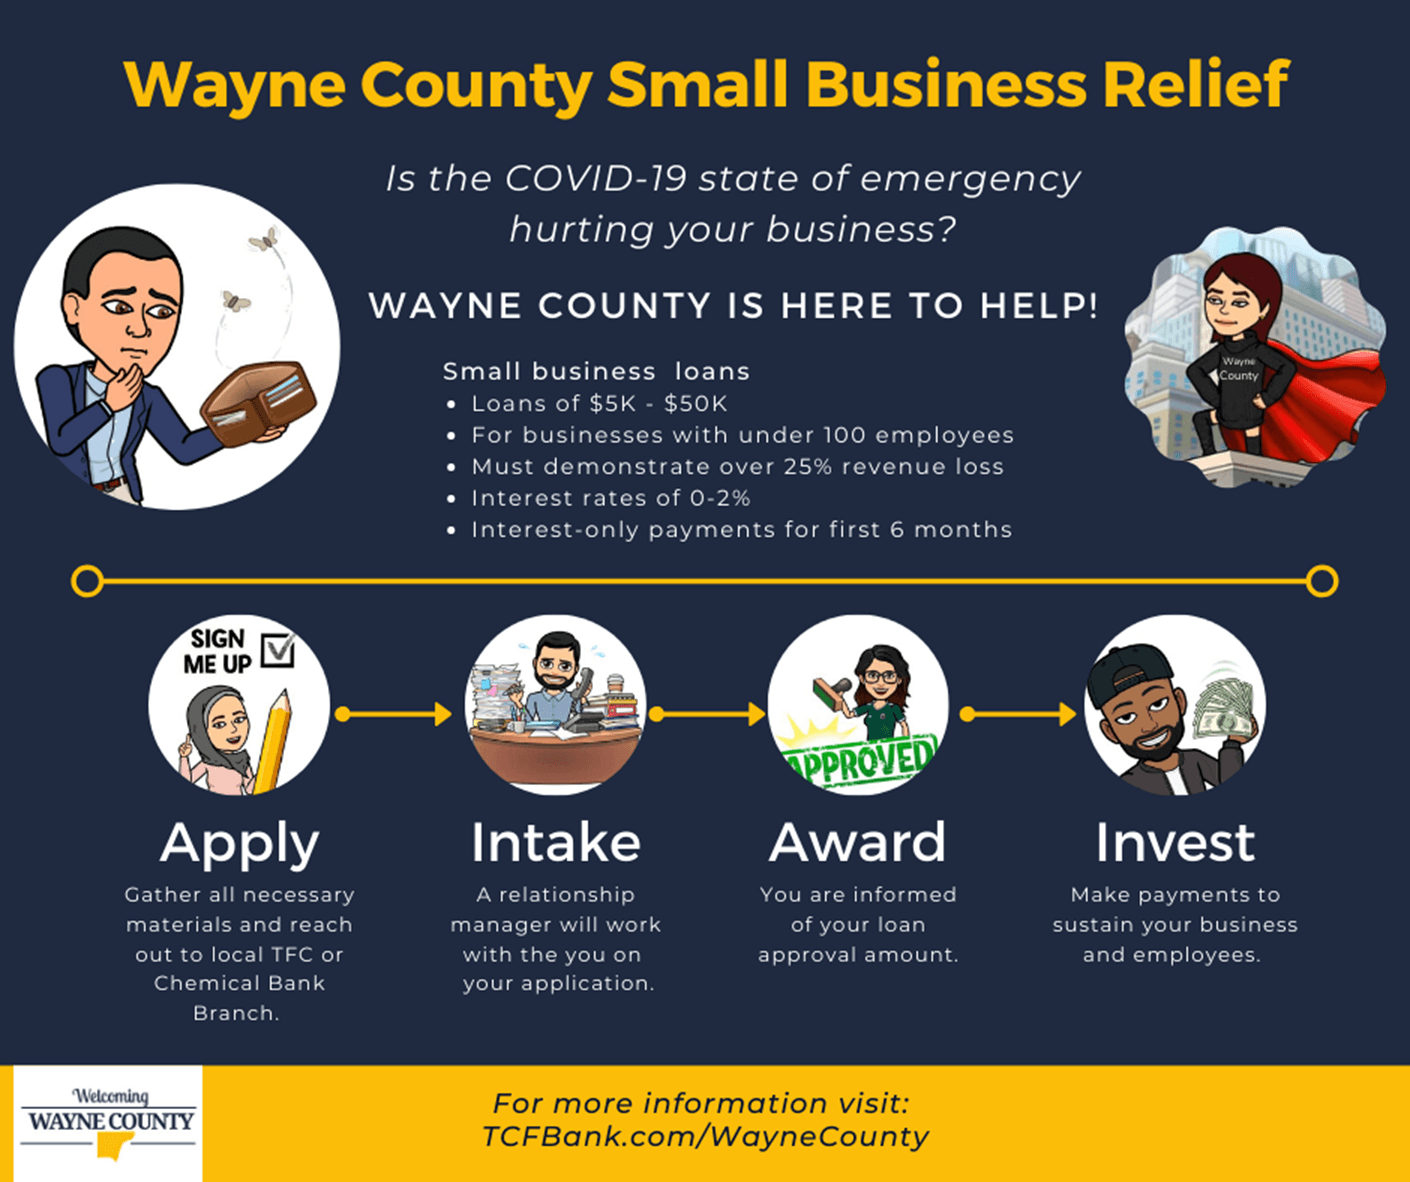 Wayne County Small Business Relief